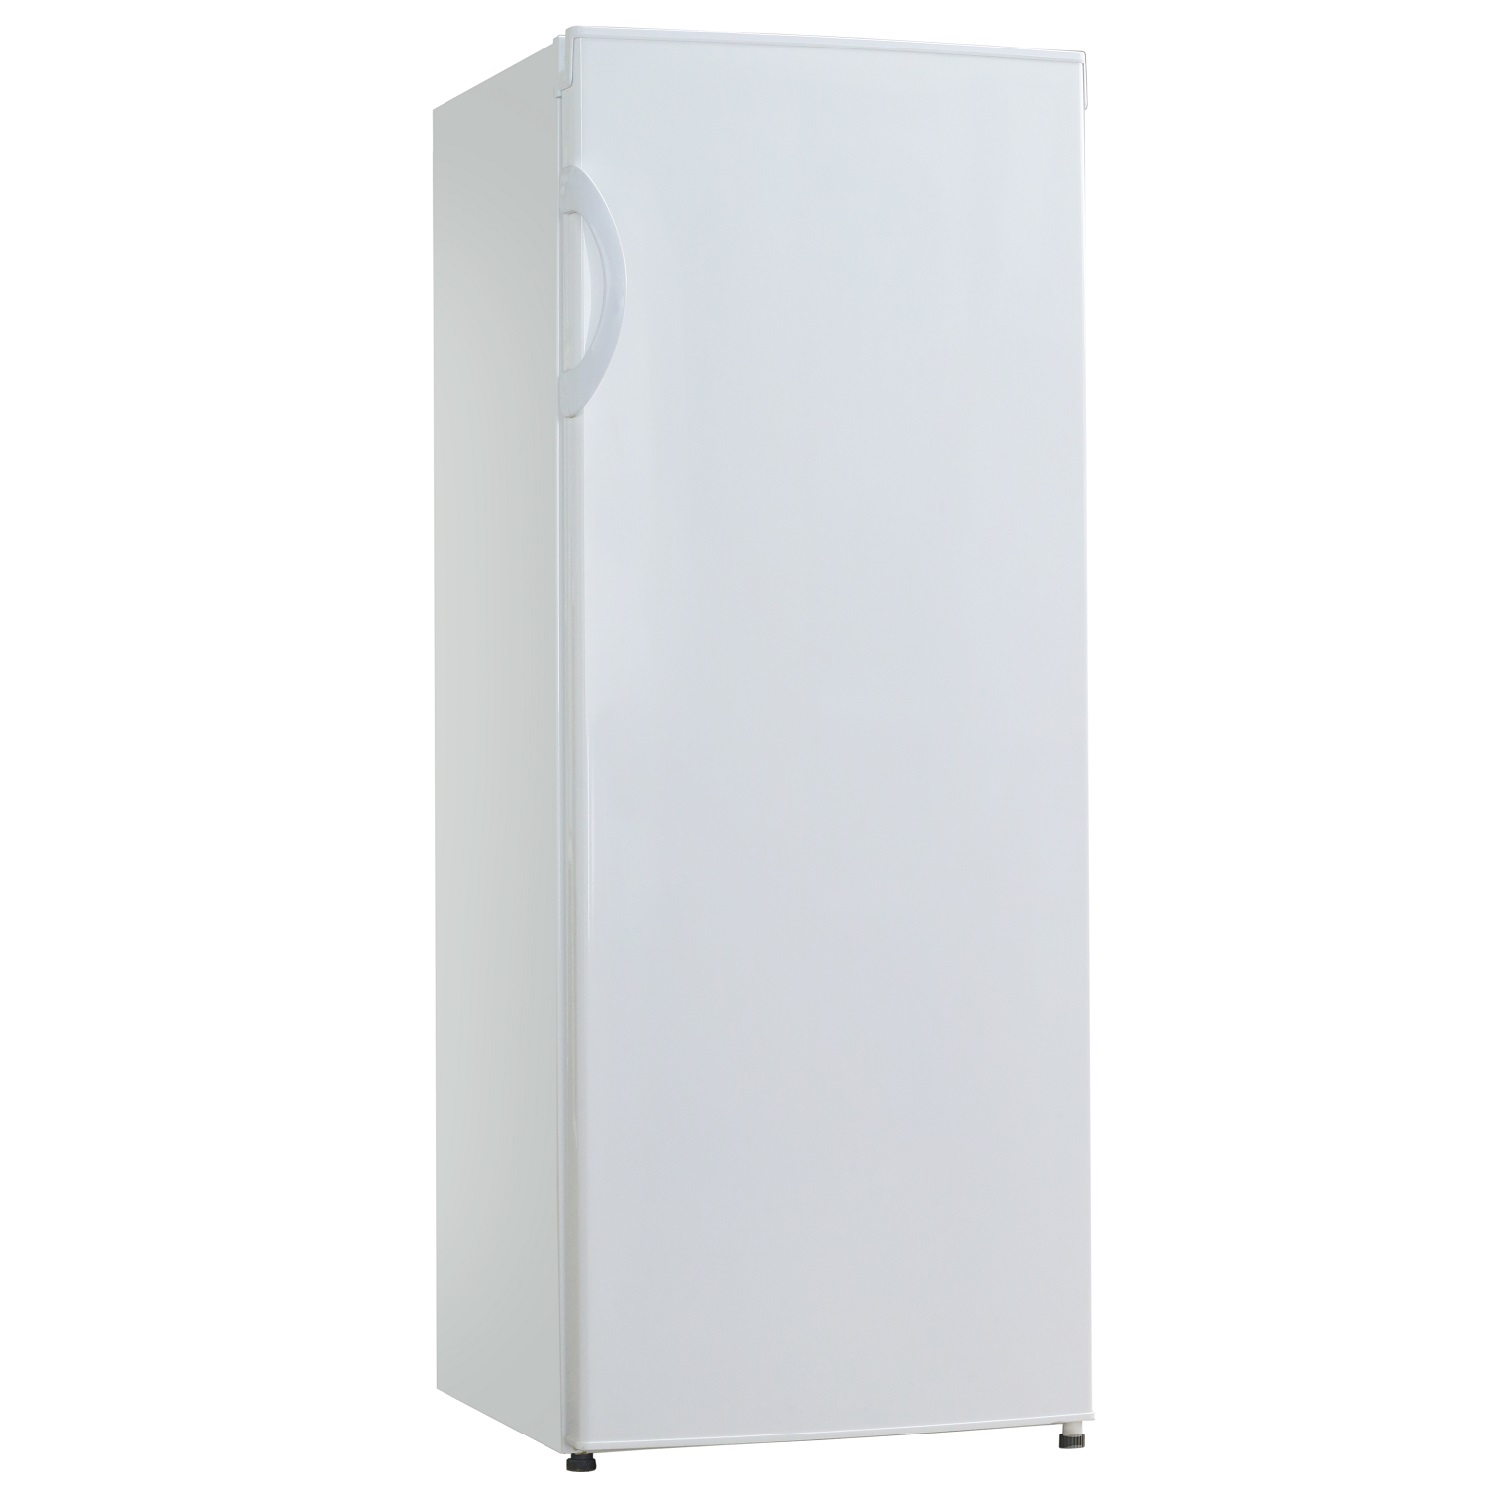 Midea MR237W 237L Upright Fridge